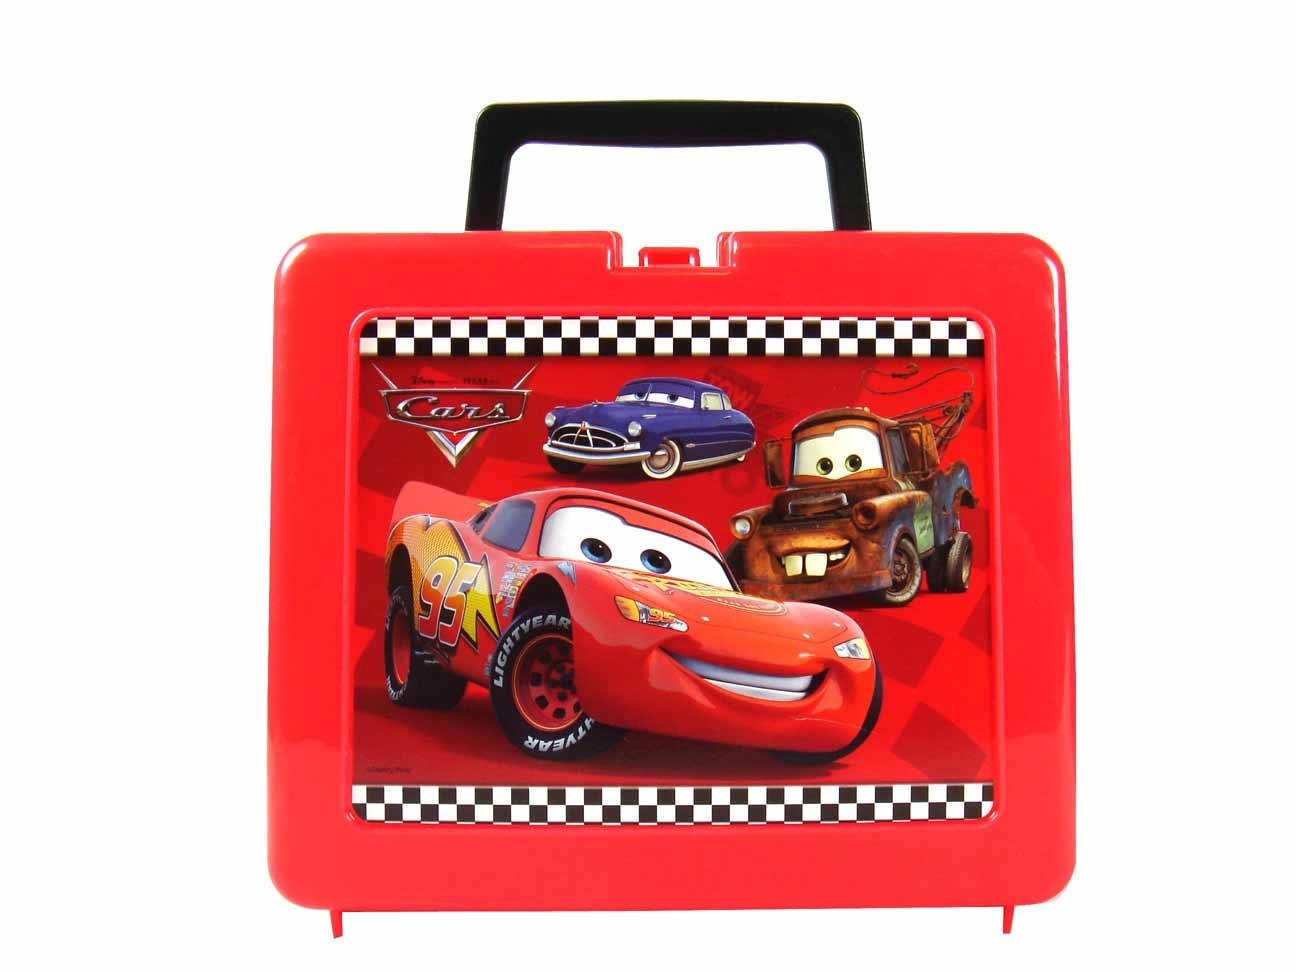 Cars Lunch Box fond d'écran